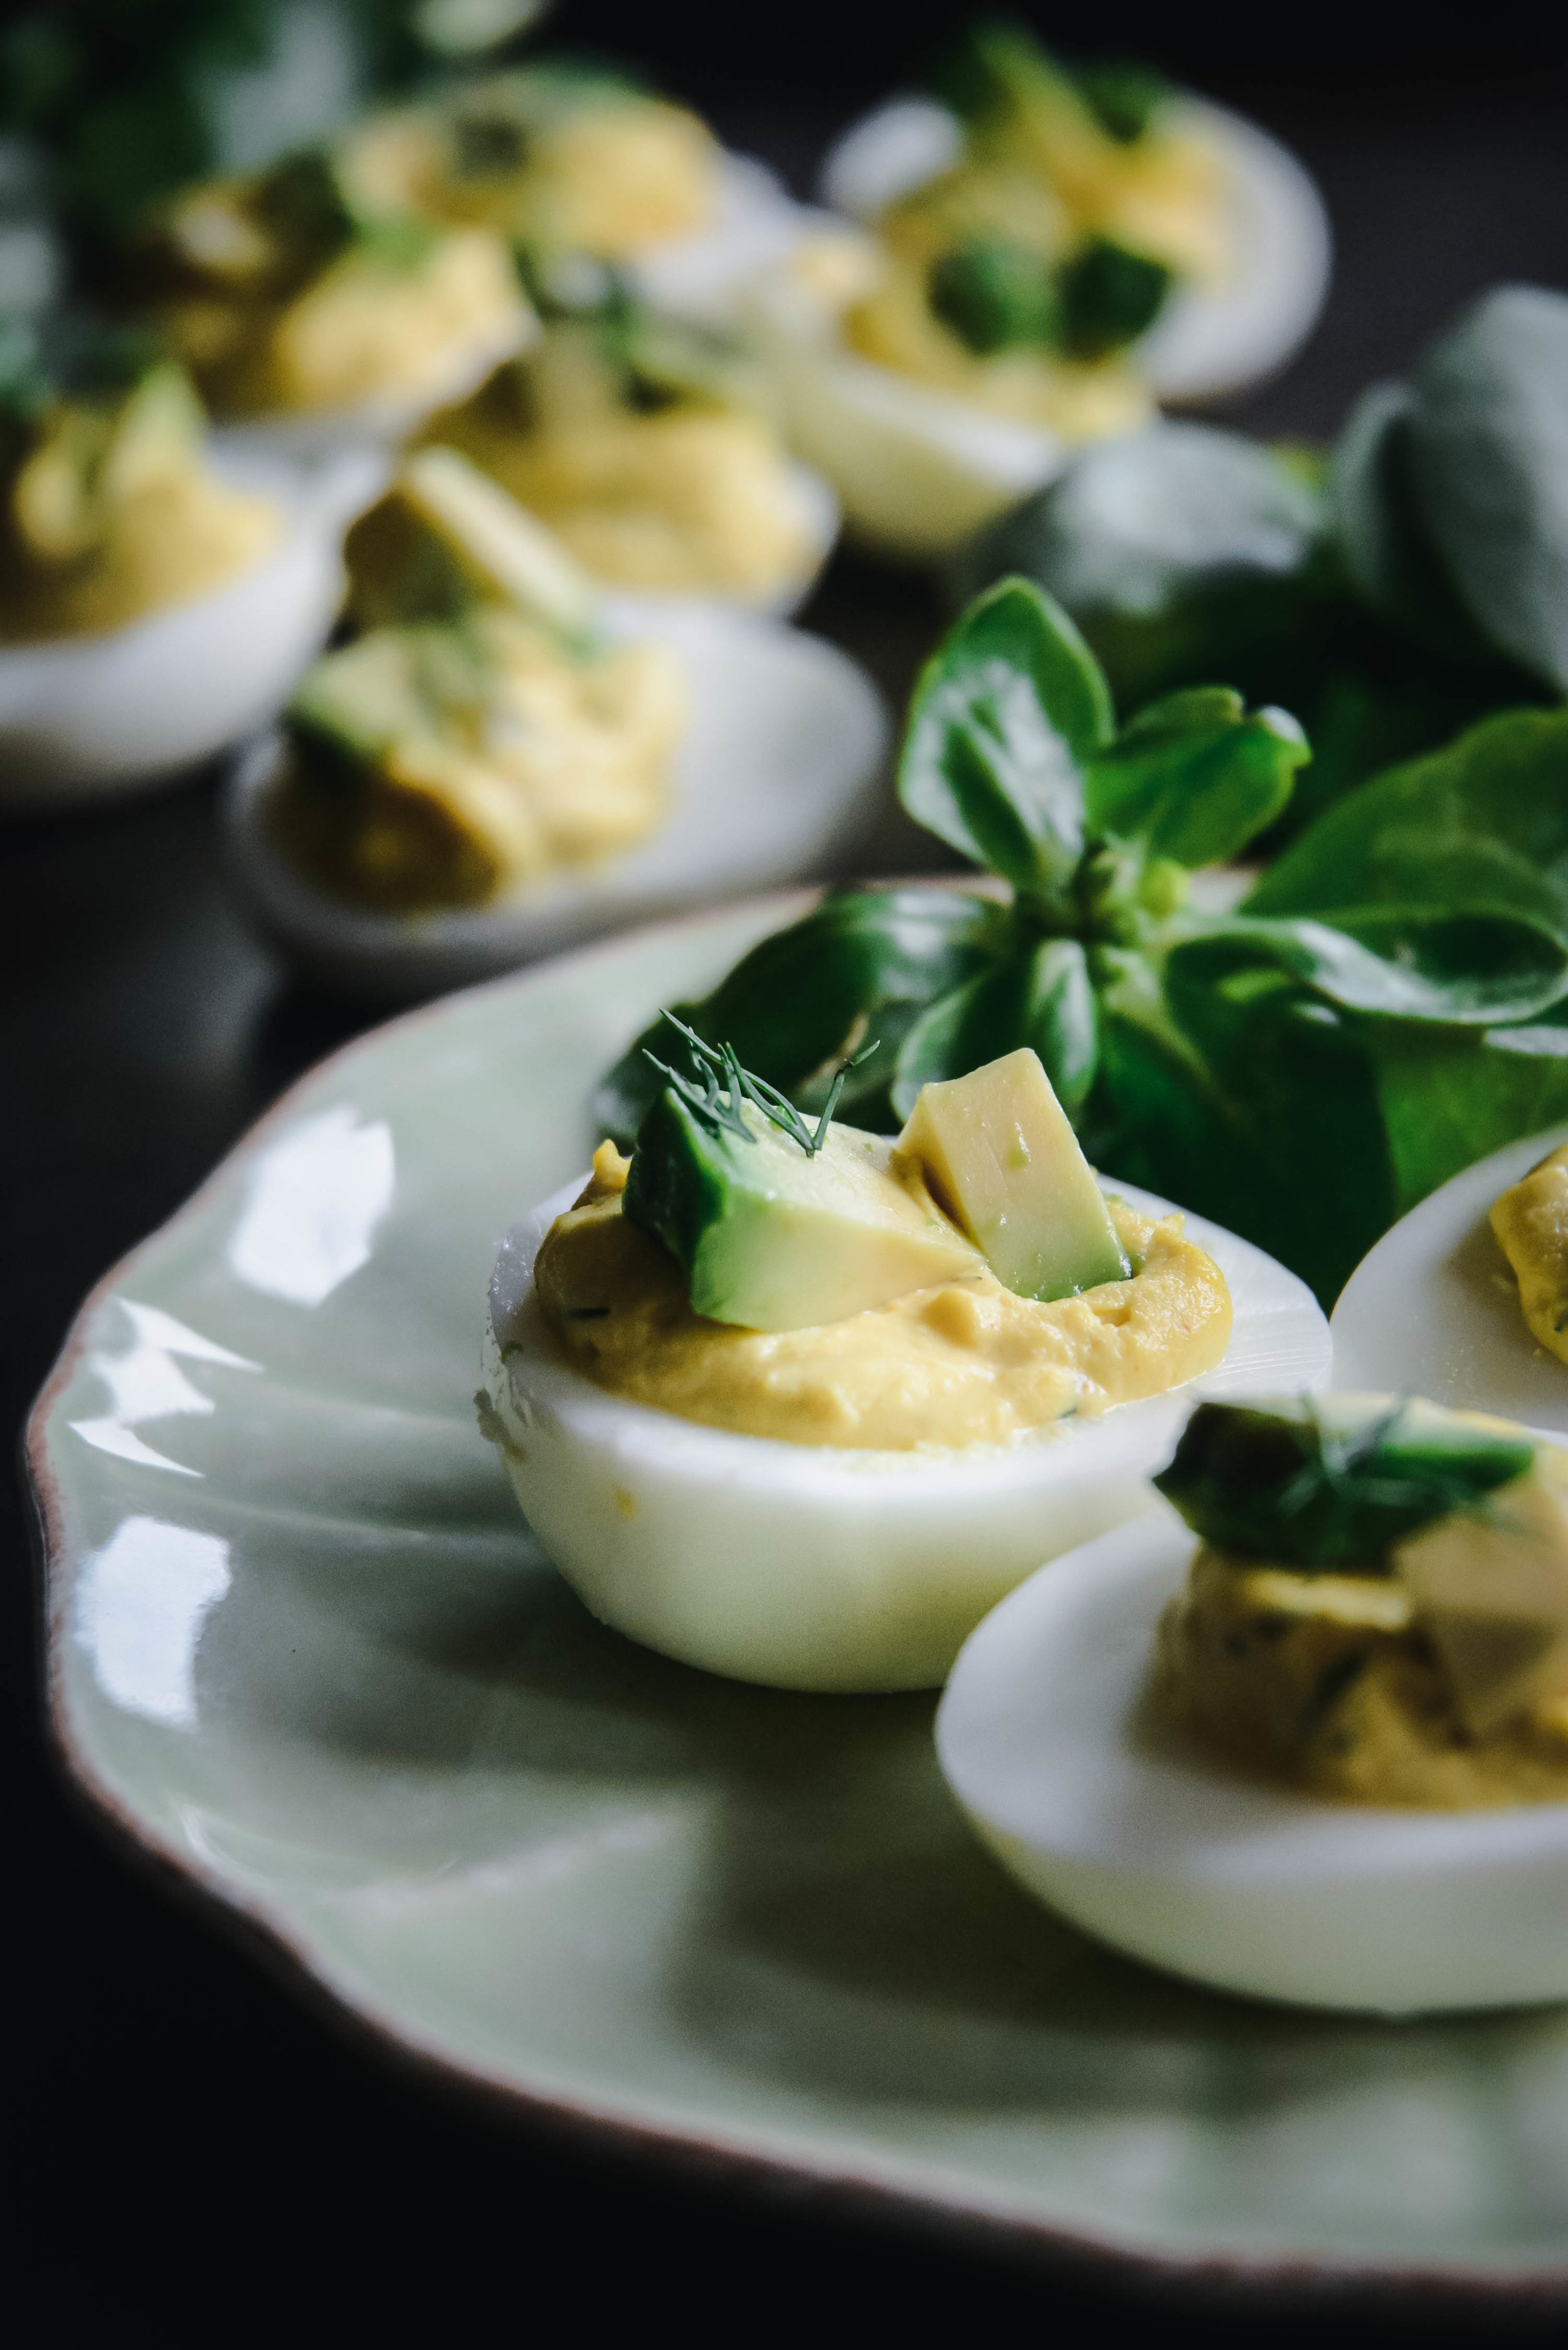 deviled eggs with avocado and greens